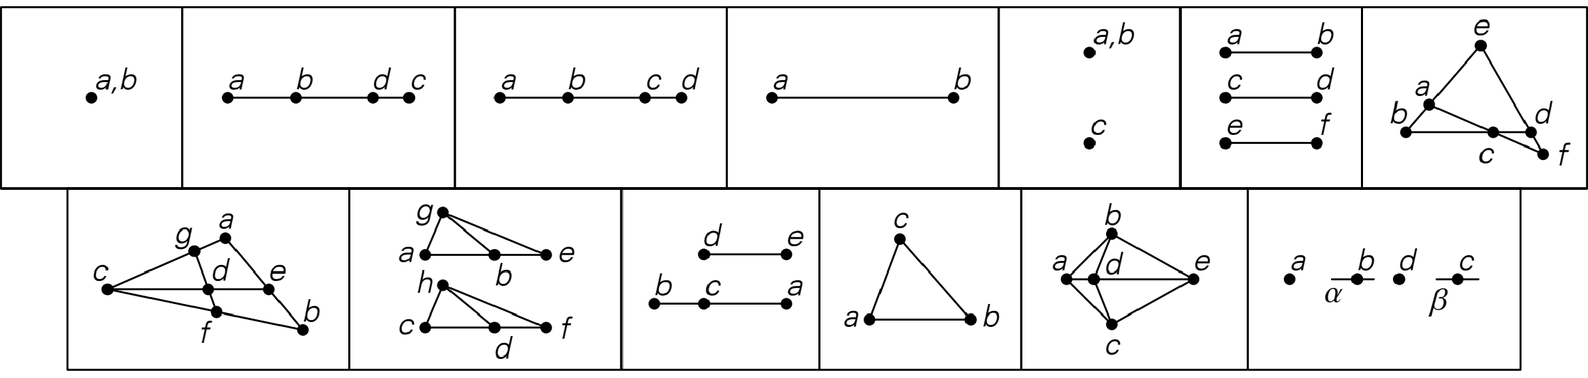 [Axioms for] geometry image 1